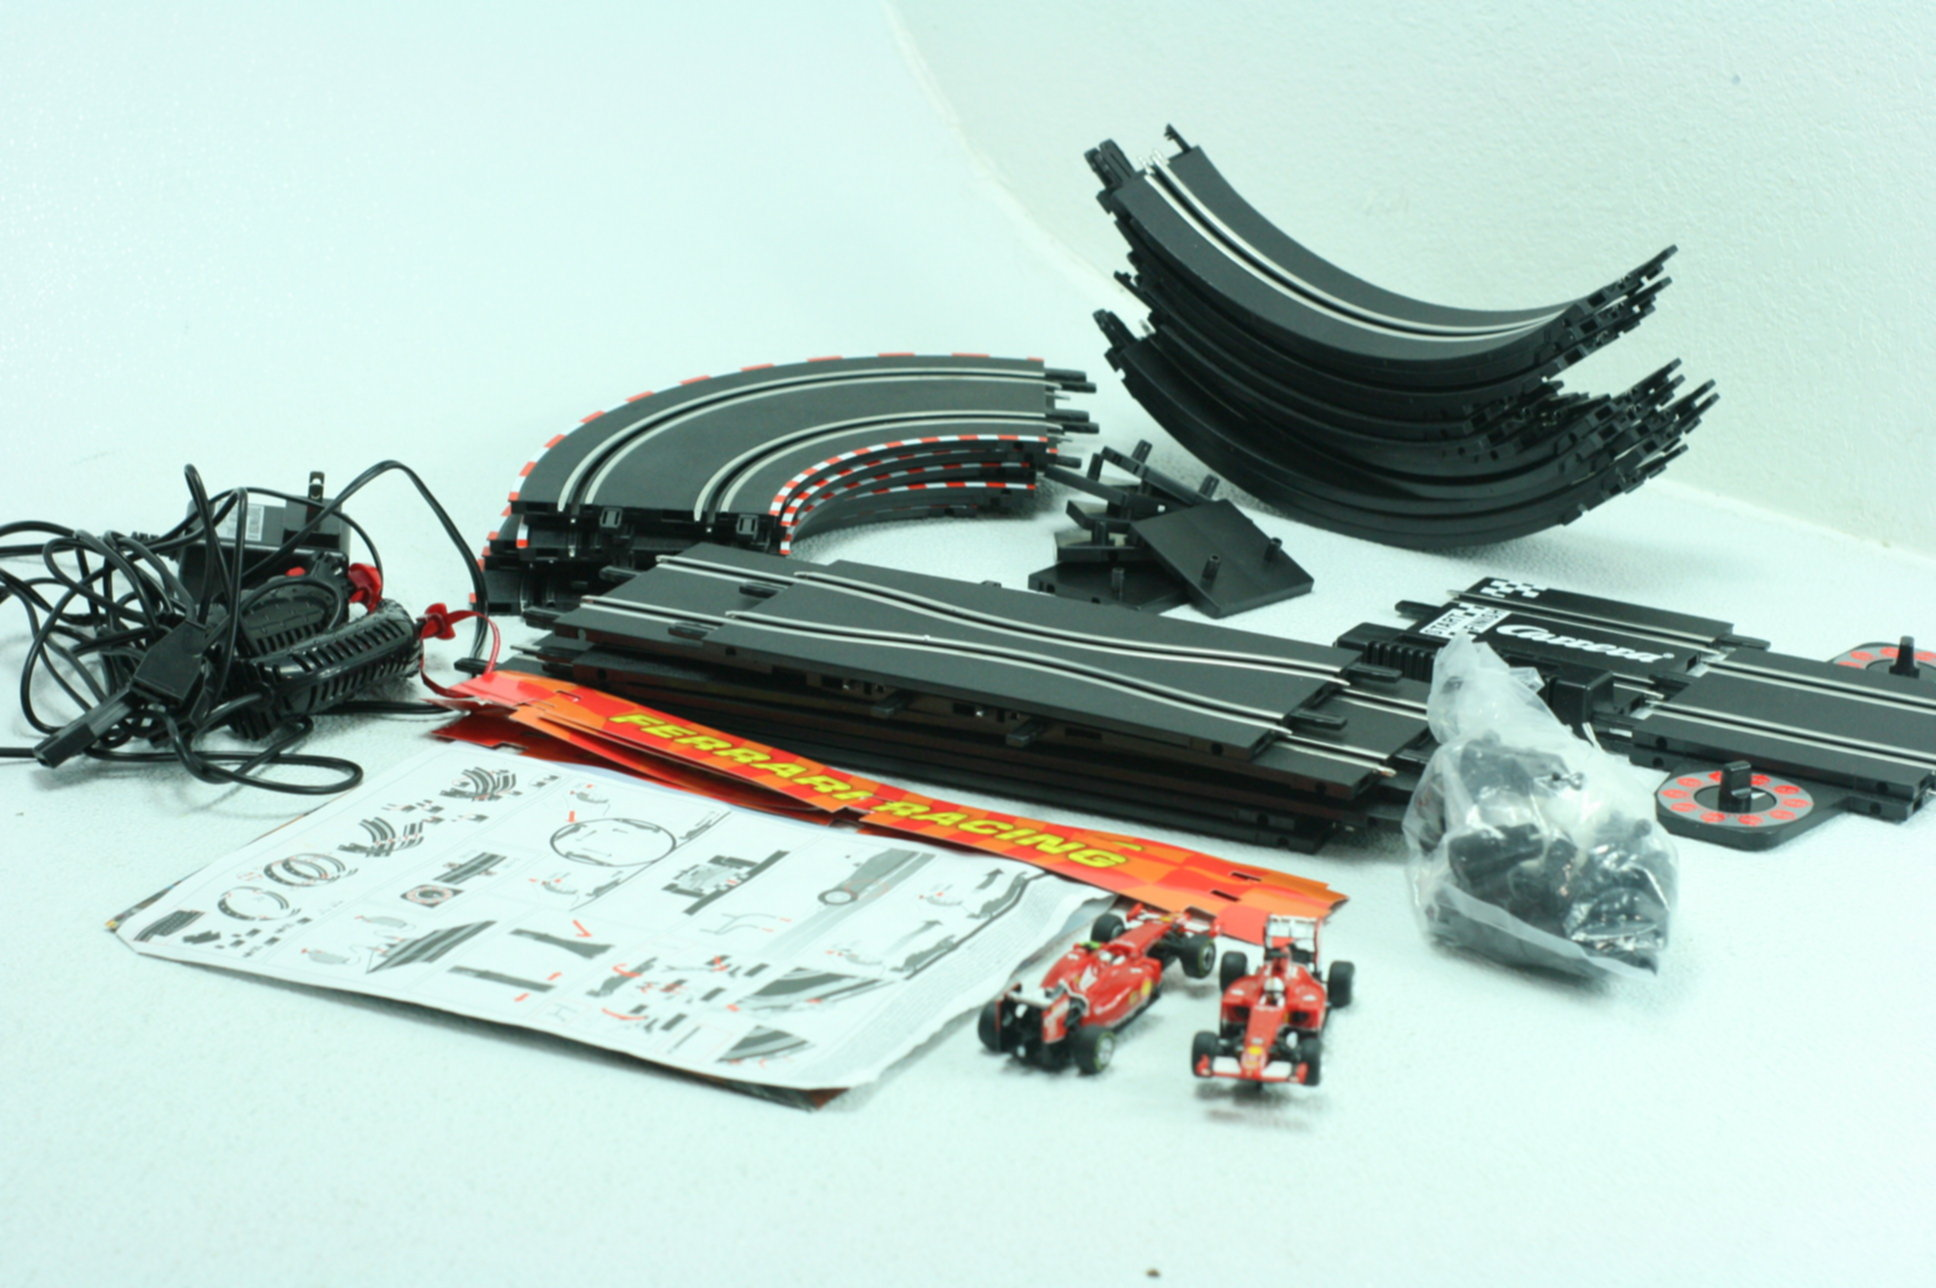 Carrera Go Ferrari Red Champions Slot Car Racetrack 1 43 Scale Track Wiring Race To Analog System